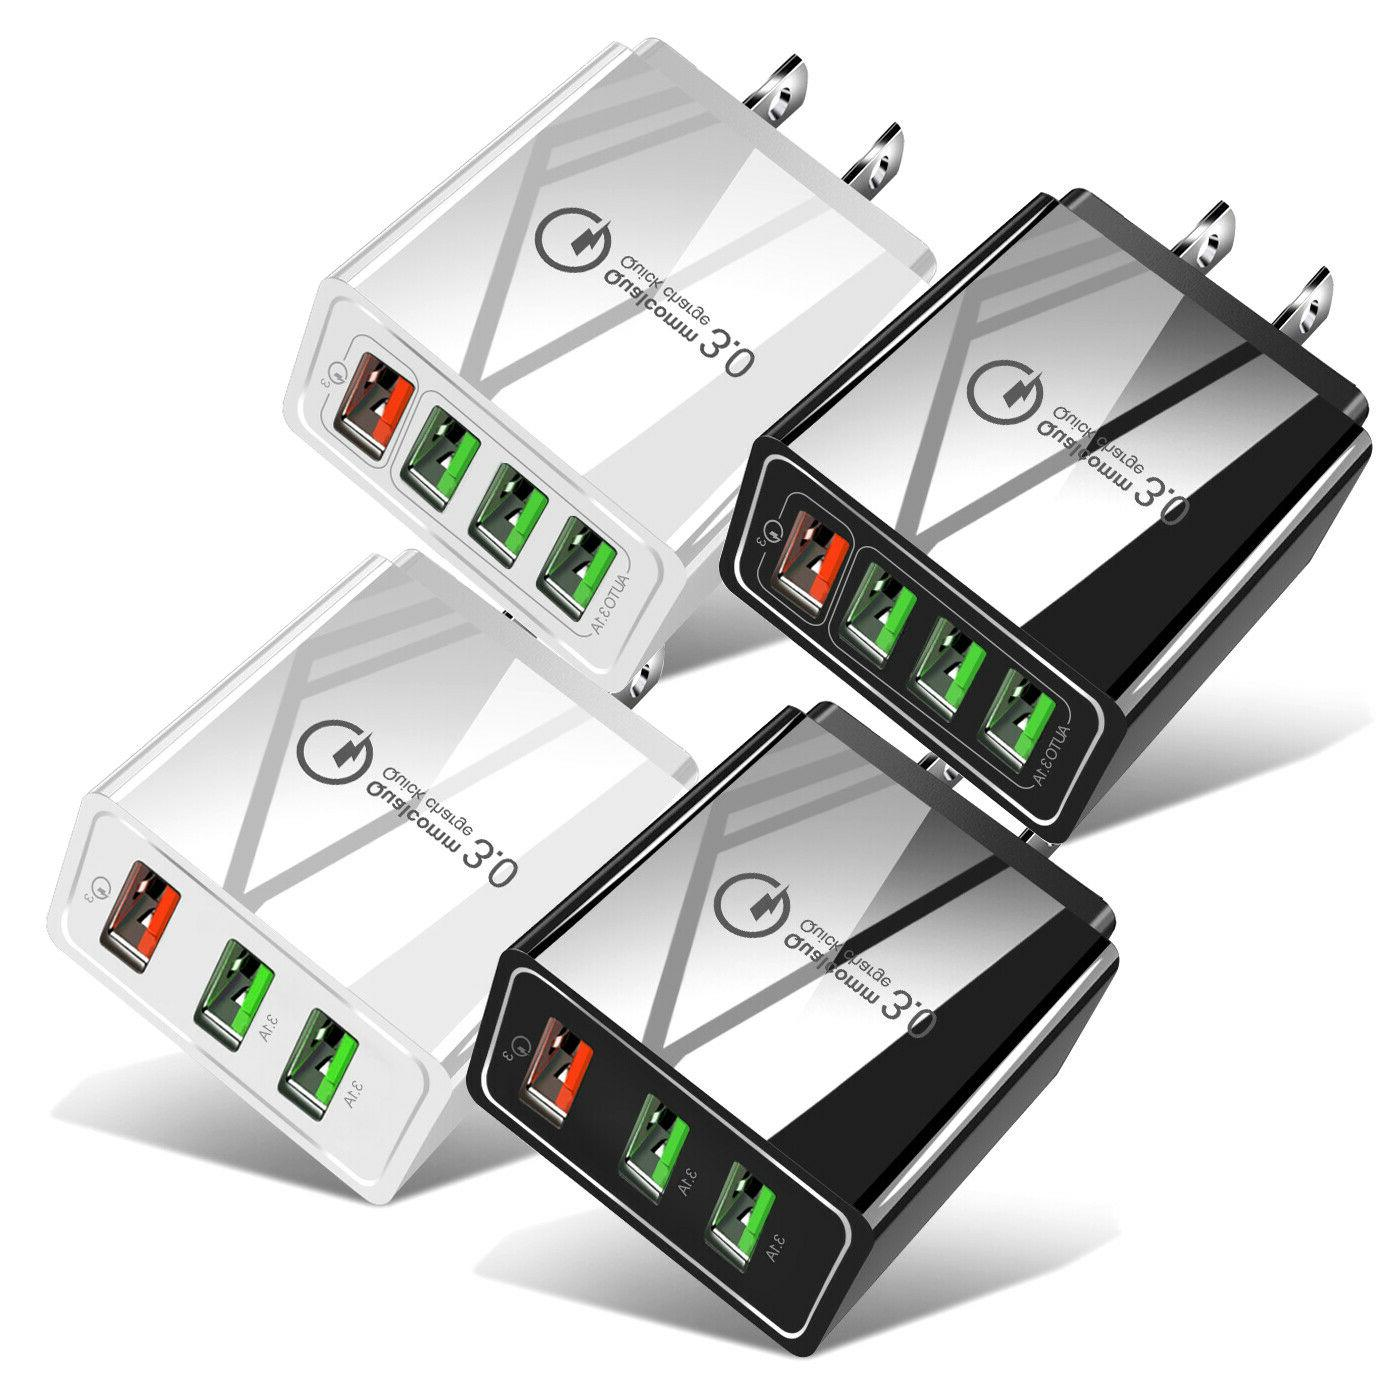 usb fast quick charger wall power adapter